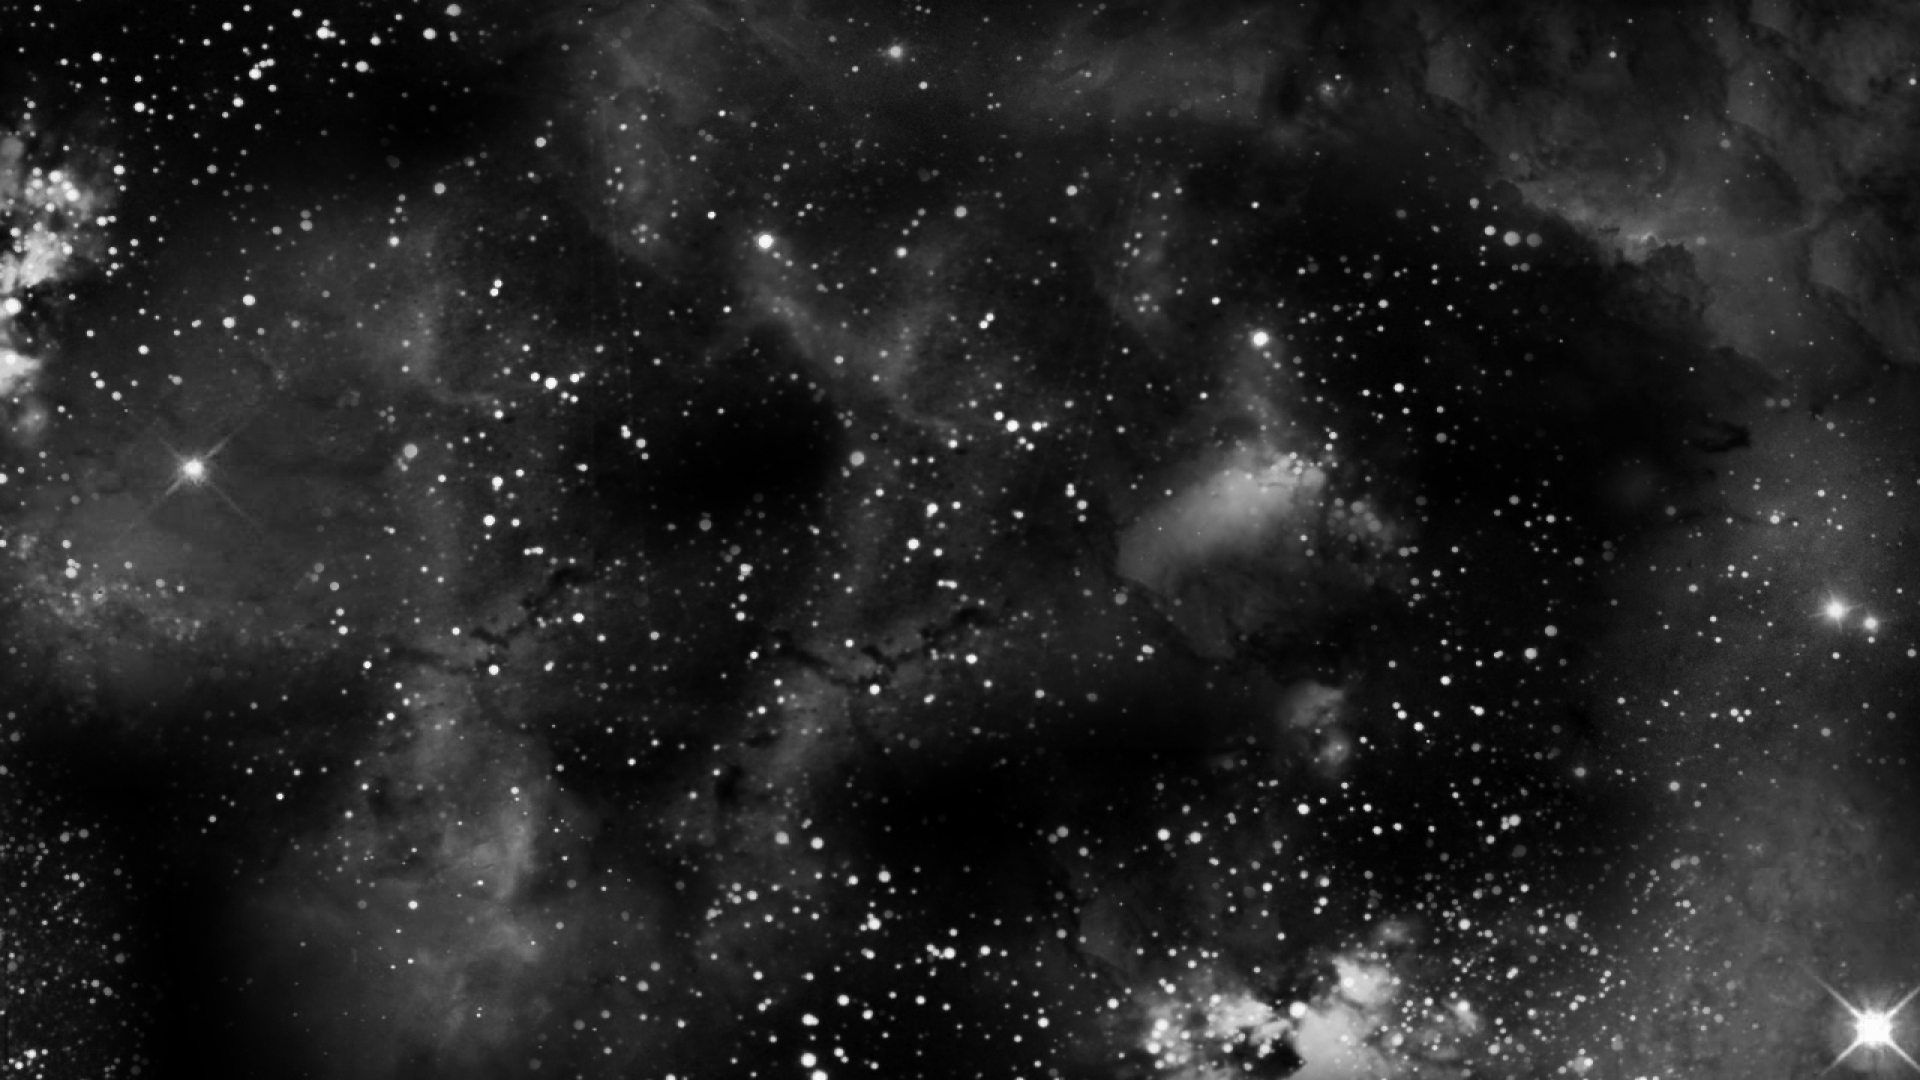 Black And White Galaxy Wallpaper Posted By John Peltier